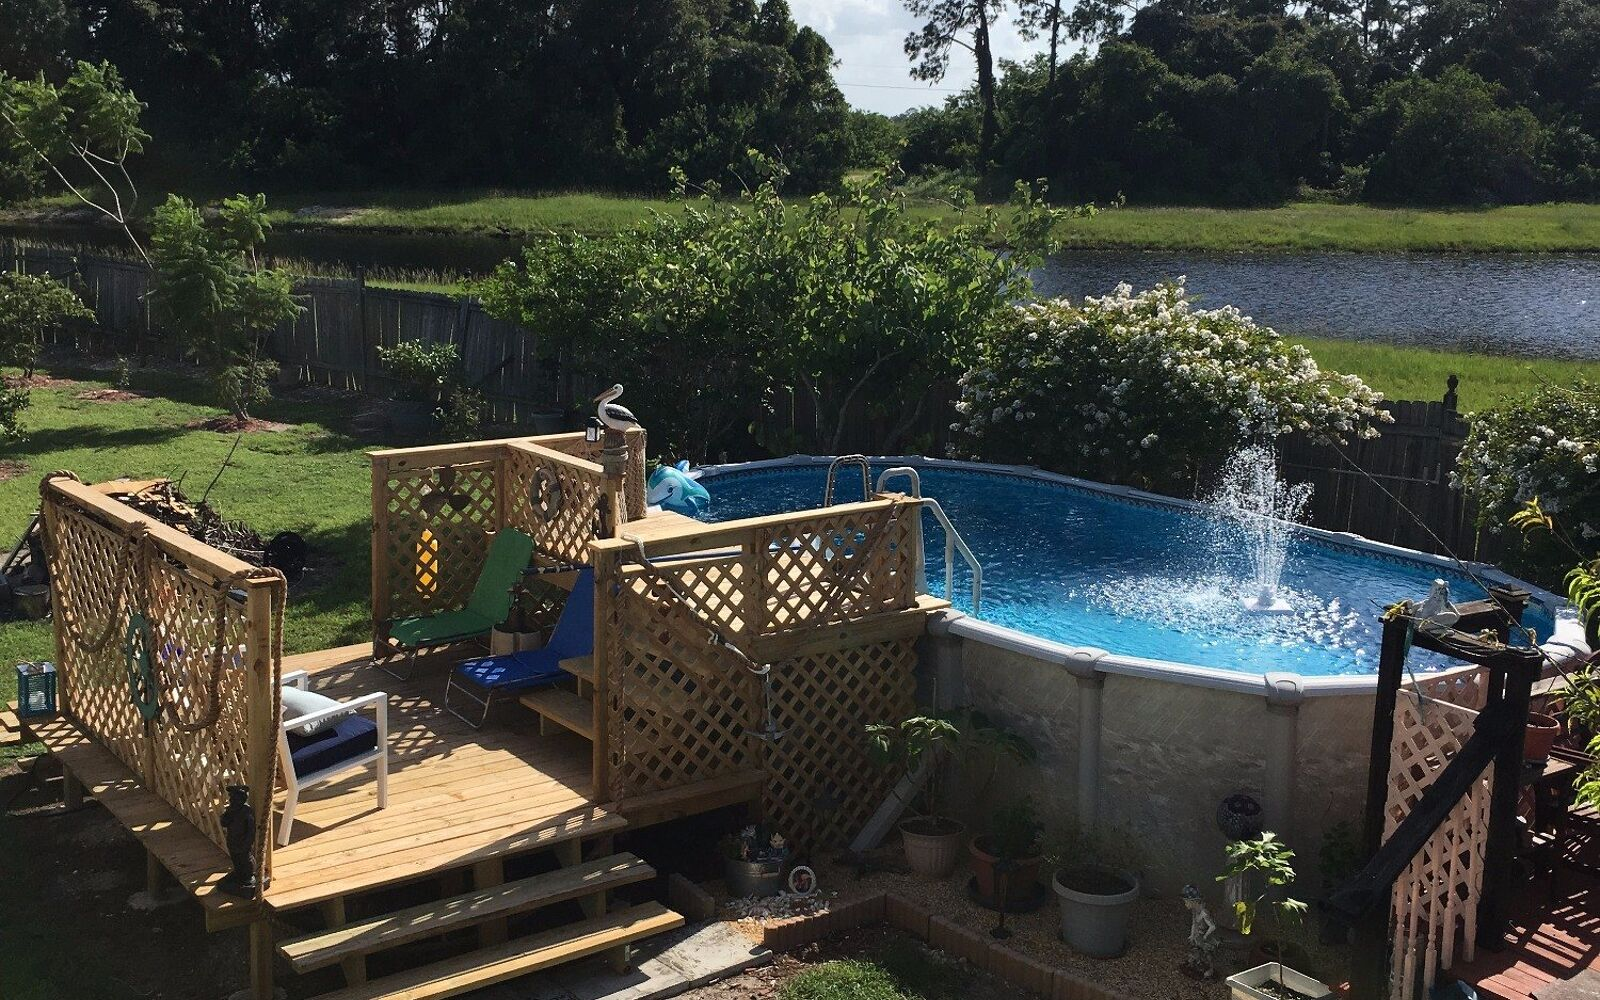 s upgrade your backyard with these 30 clever ideas, Build a beautiful pool deck